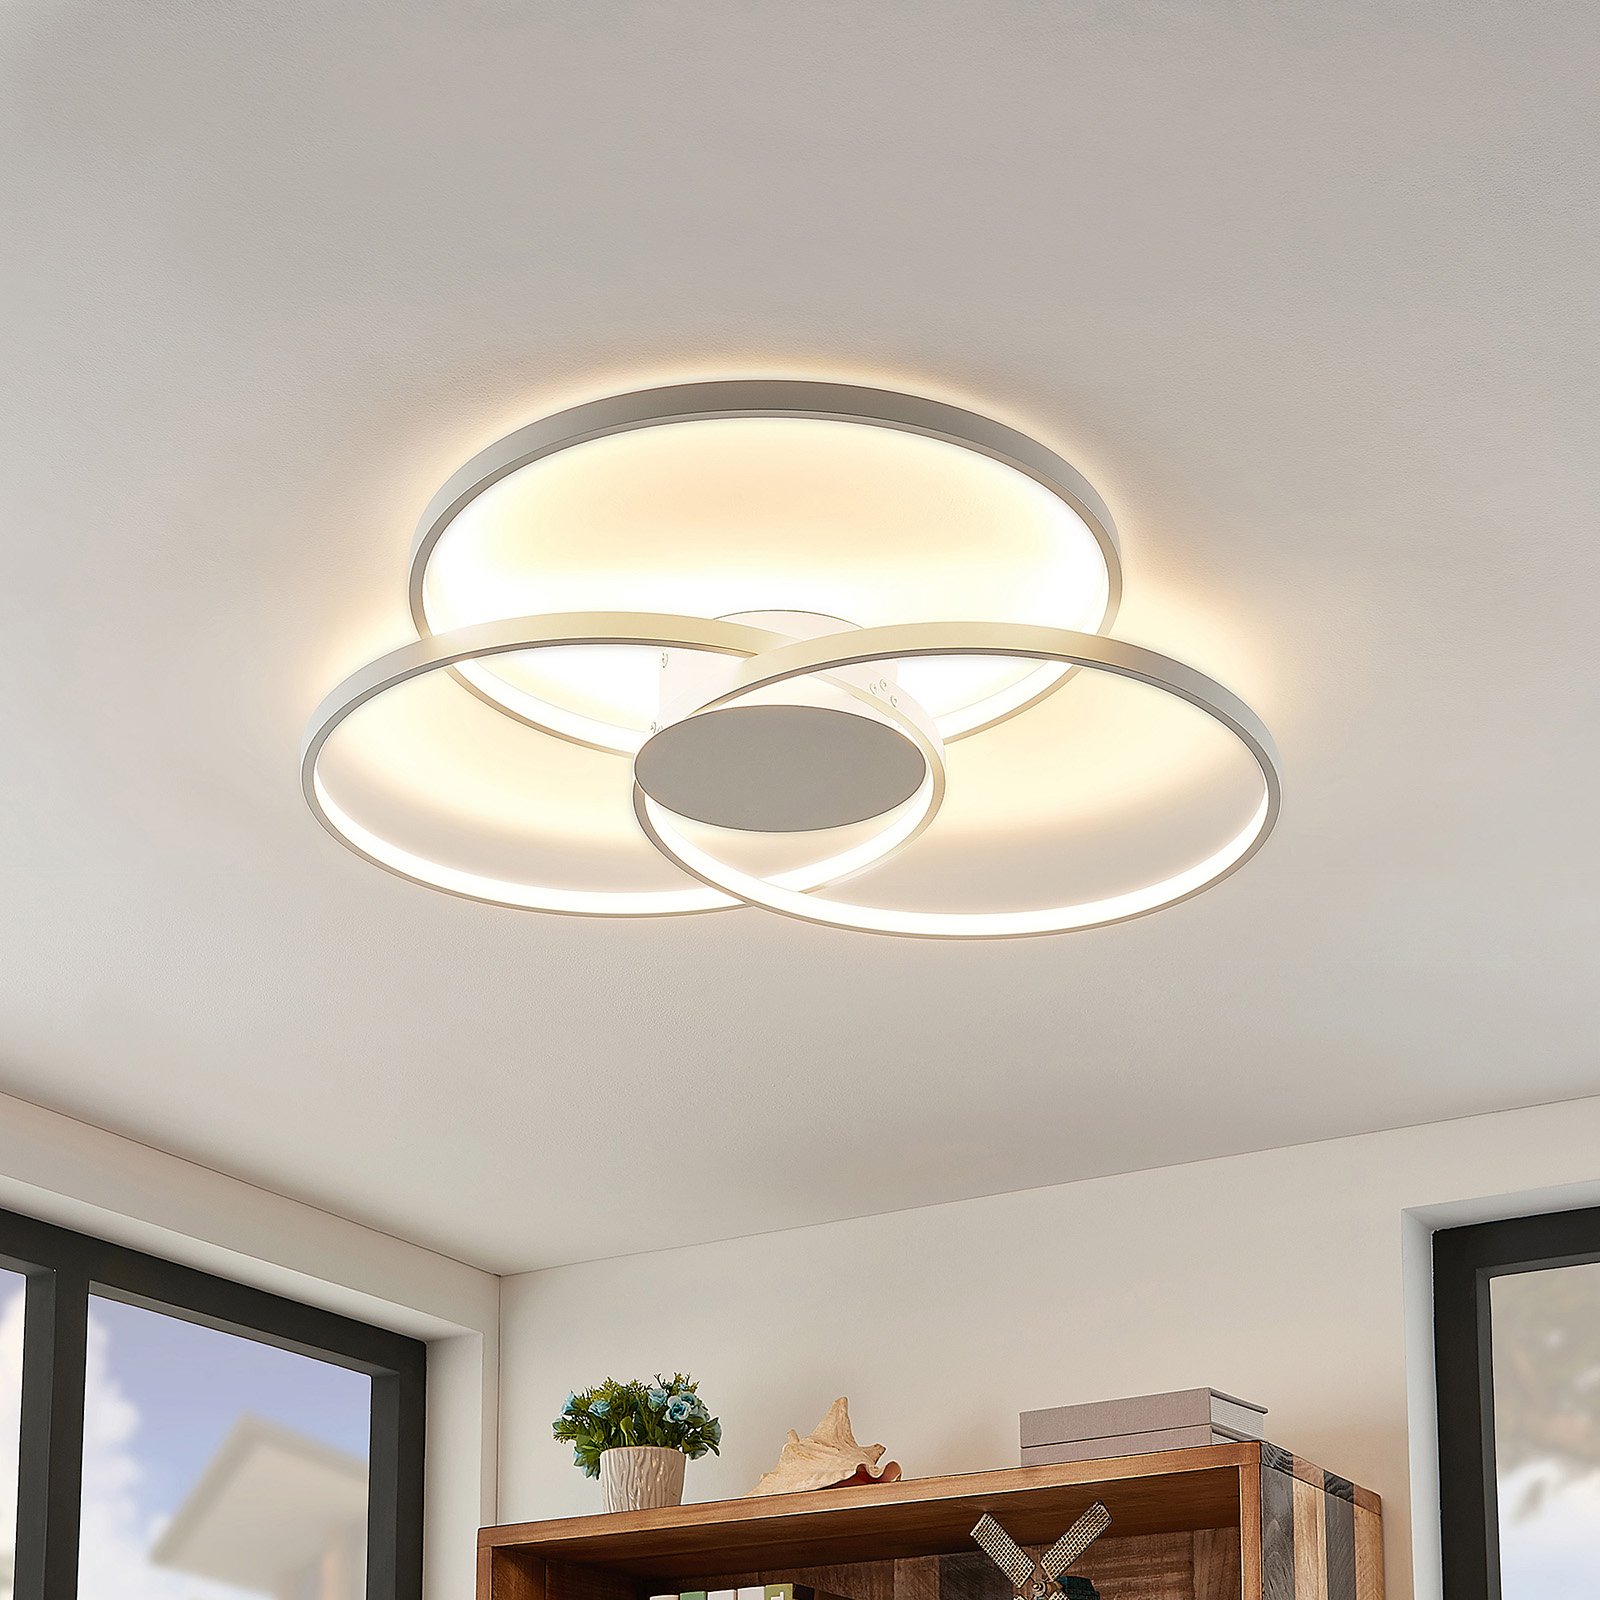 Lindby Nerwin plafón LED, atenuable, blanco